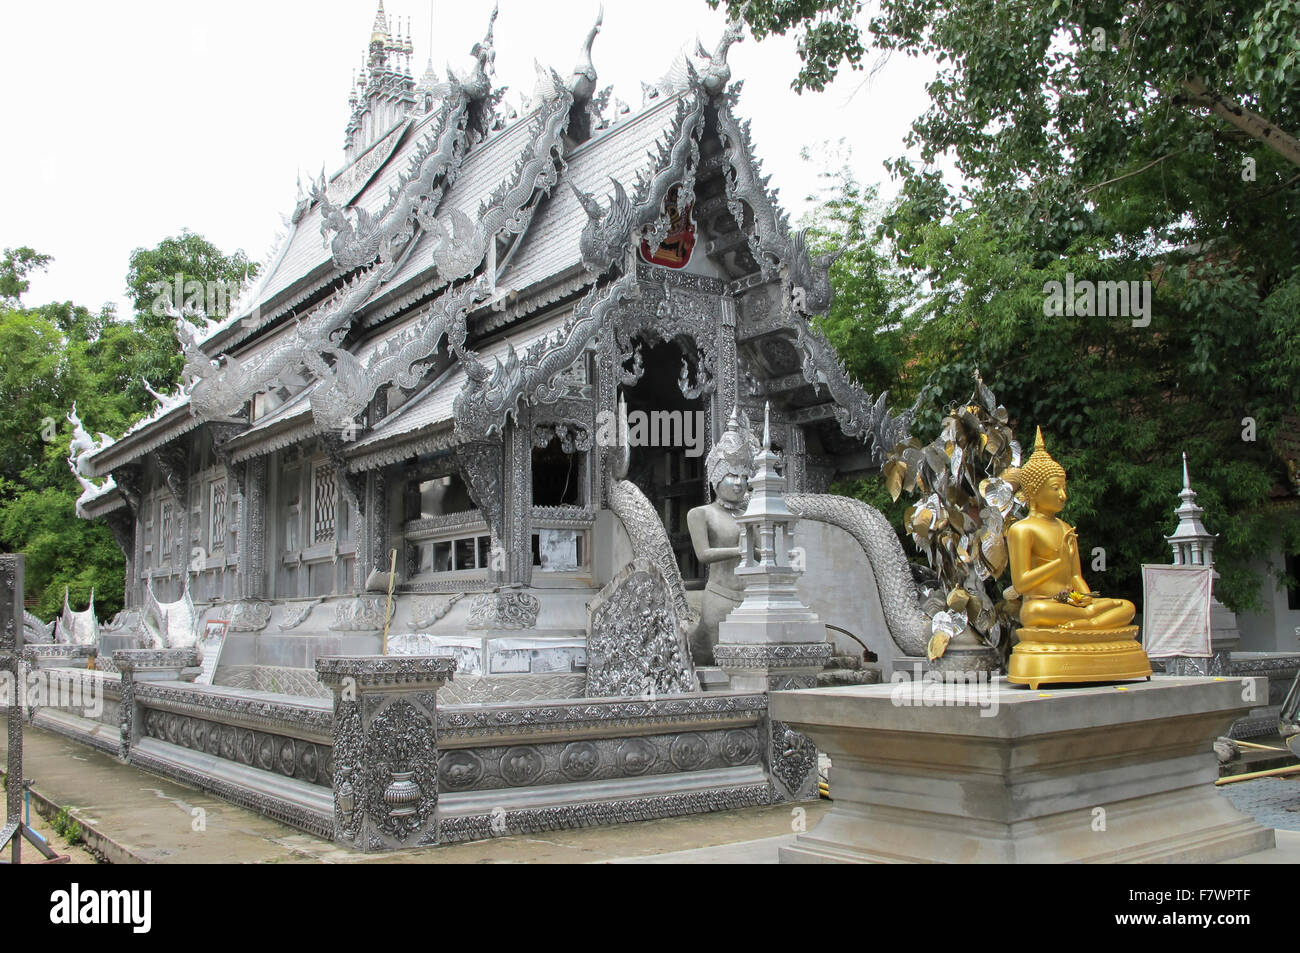 Wat Sri Suphan in Chiang Mai, Thailand Stock Photo, Royalty Free Image: 90921...